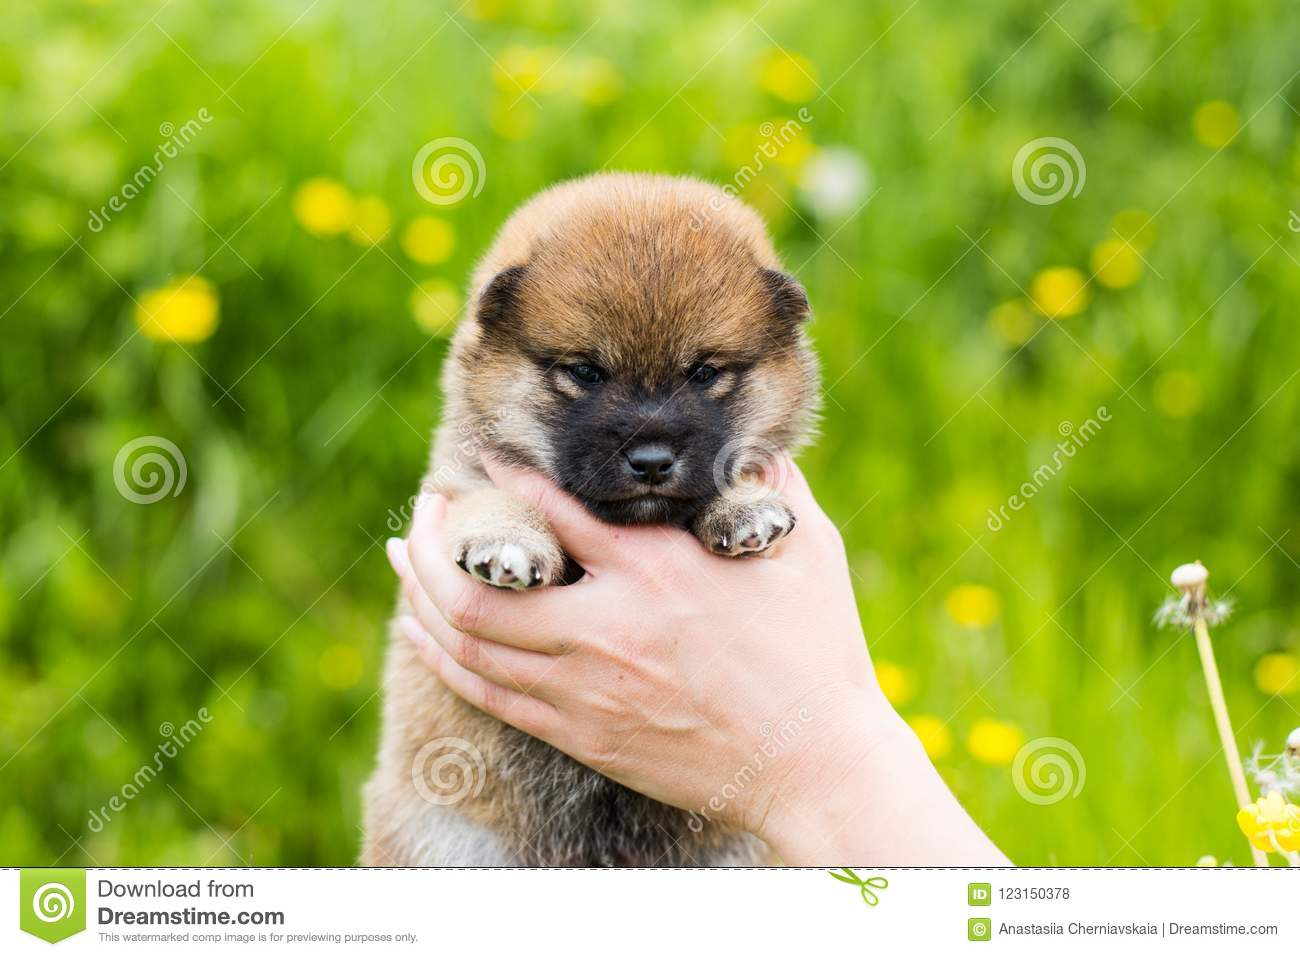 Portrait Of Cute Two Weeks Old Shiba Inu Puppy In The Hands Of The Owner In The Buttercup Meadow Stock Photo Image Of Green Funny 123150378